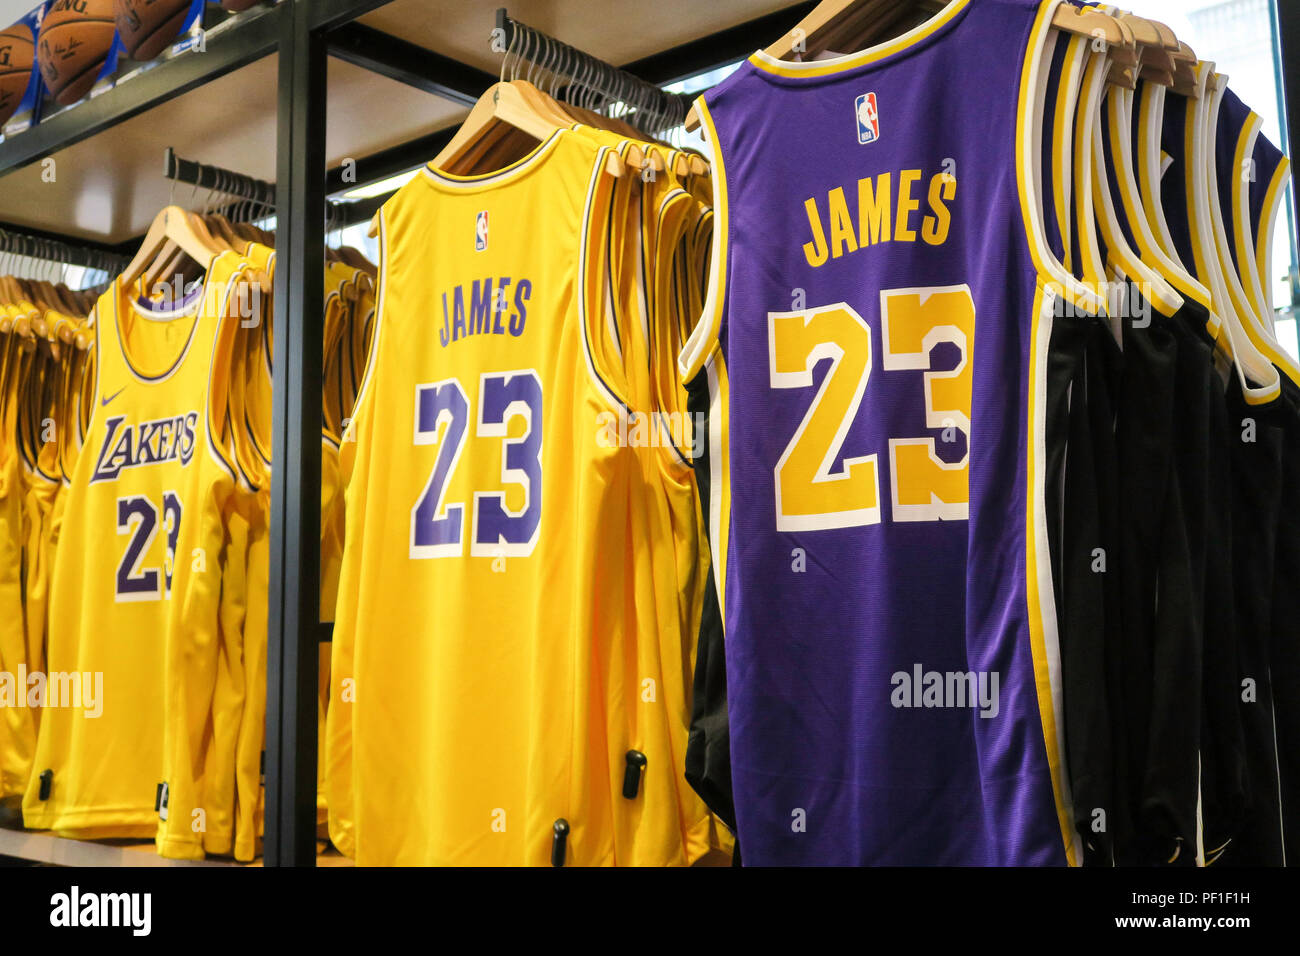 6ae5a04e8c6 Lebron James and Lakers Branded Merchandise at the NBA Store on Fifth  Avenue